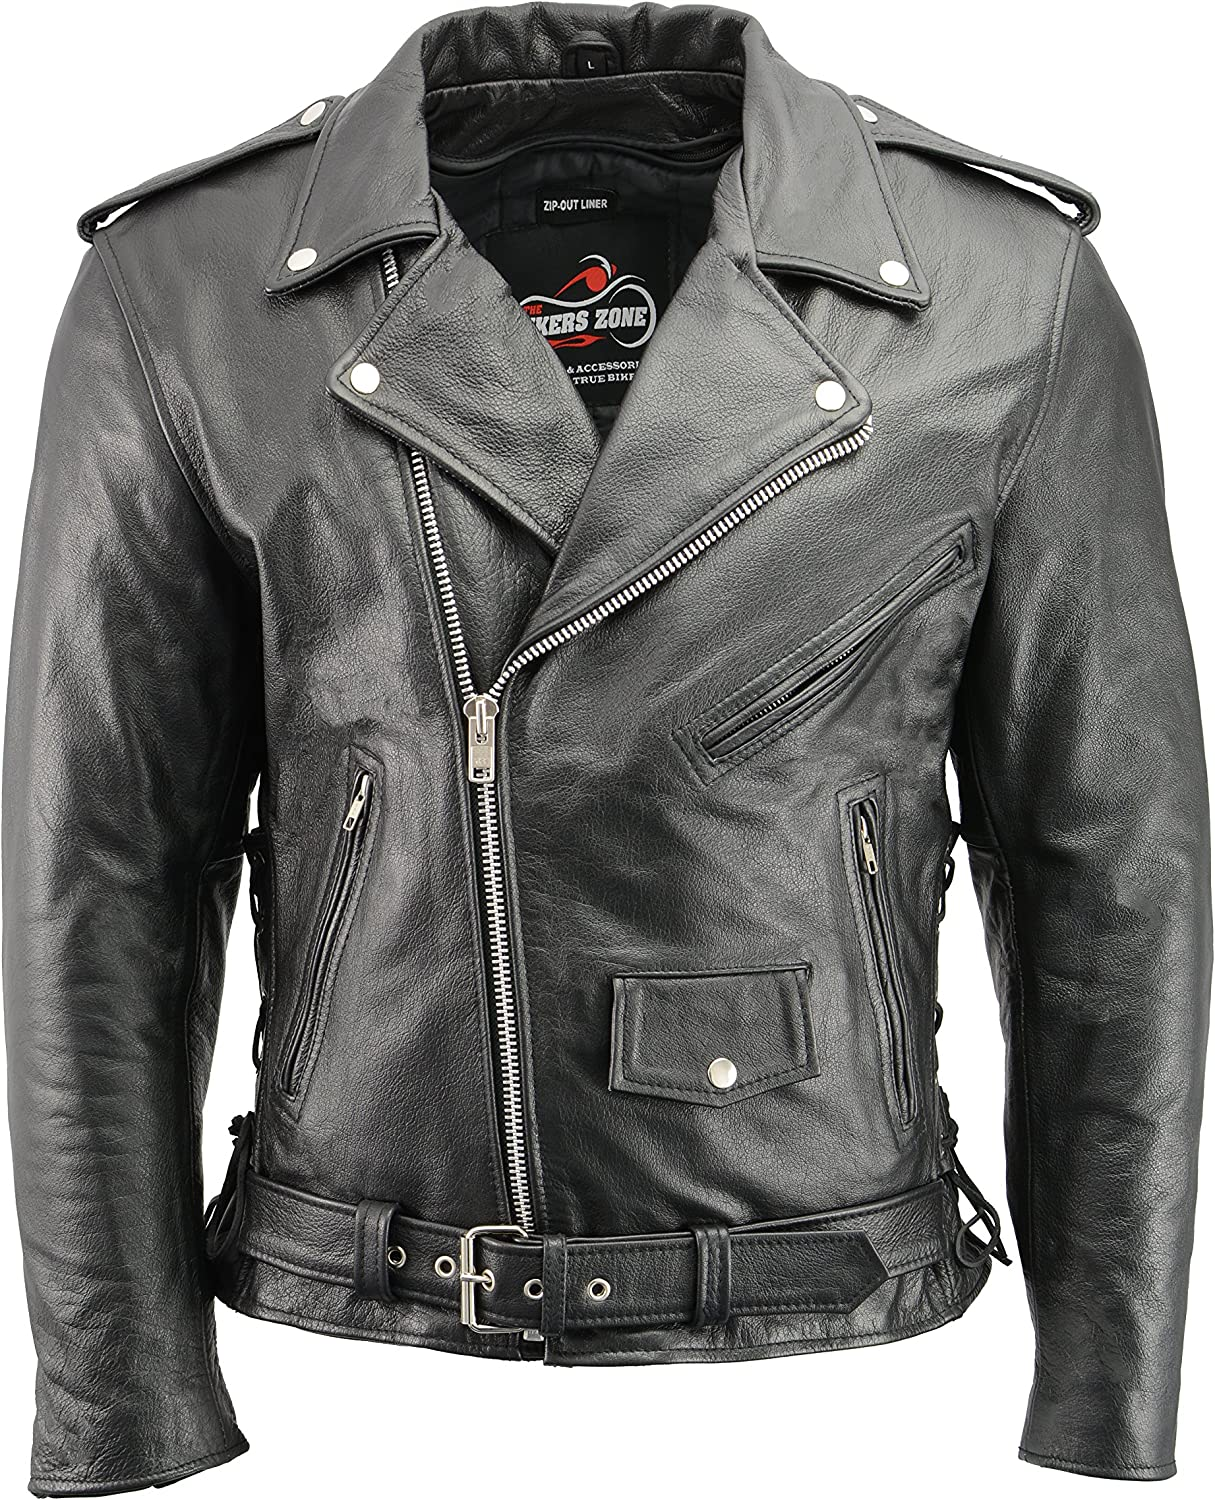 MEN/'S MOTORCYCLE CLASSIC MC JACKET LACE SIDE POLICE BIKER STYLE UPTO 11XL SIZE